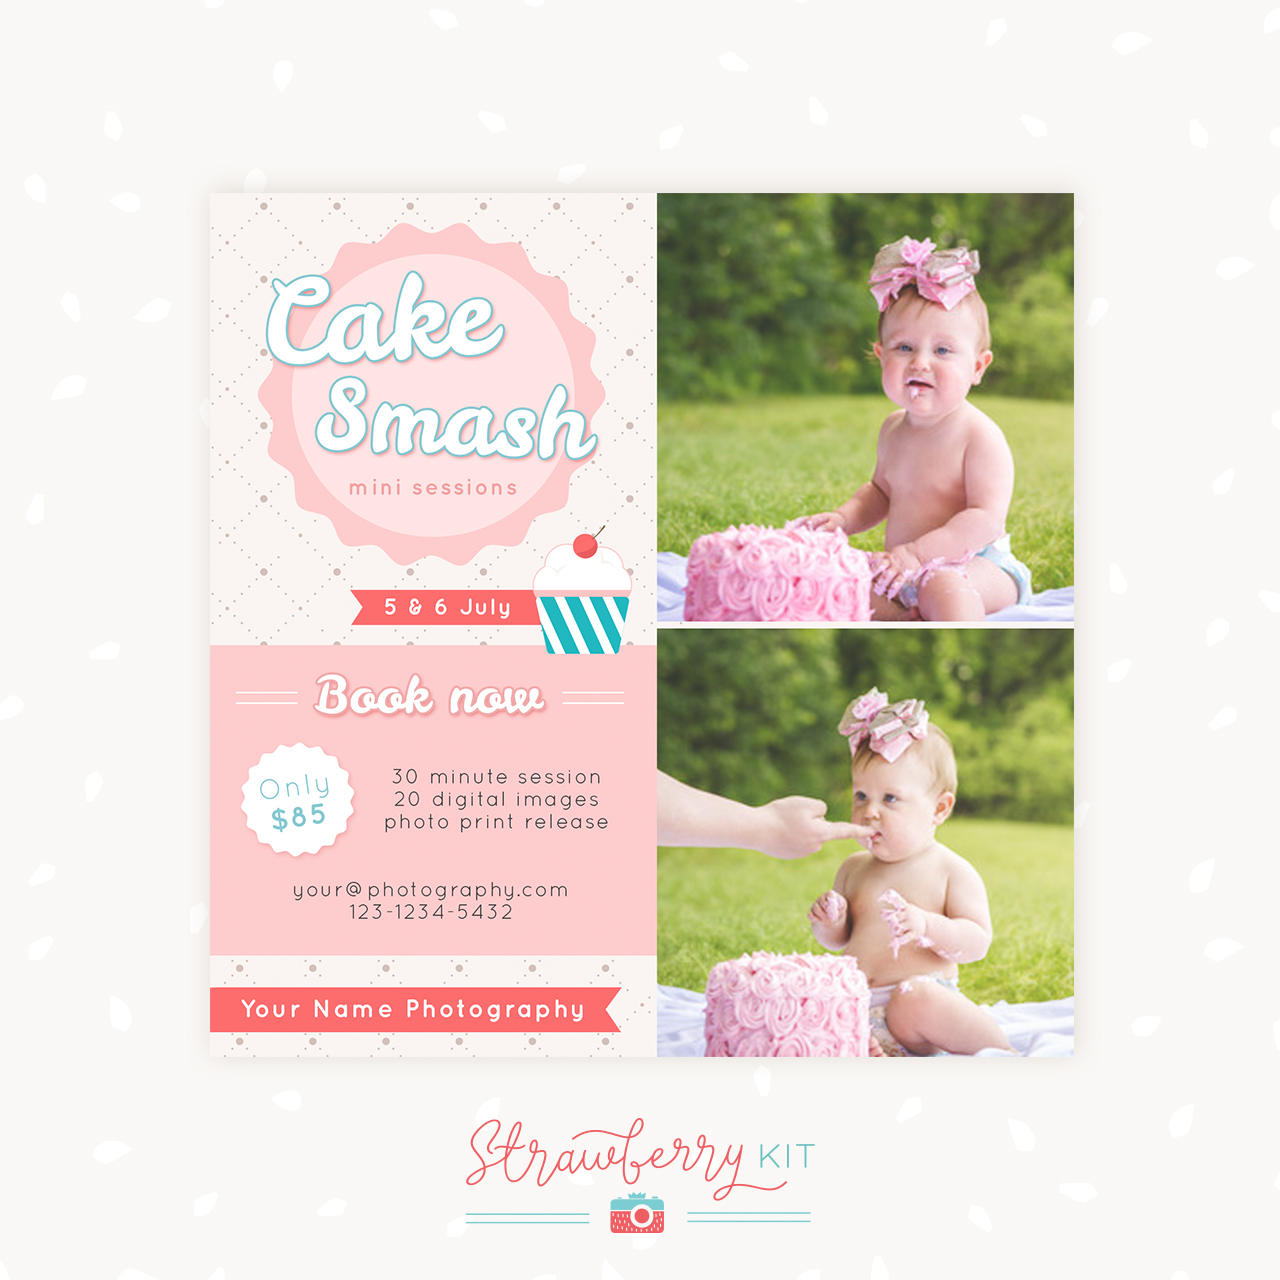 Cake Smash Mini Sessions Template